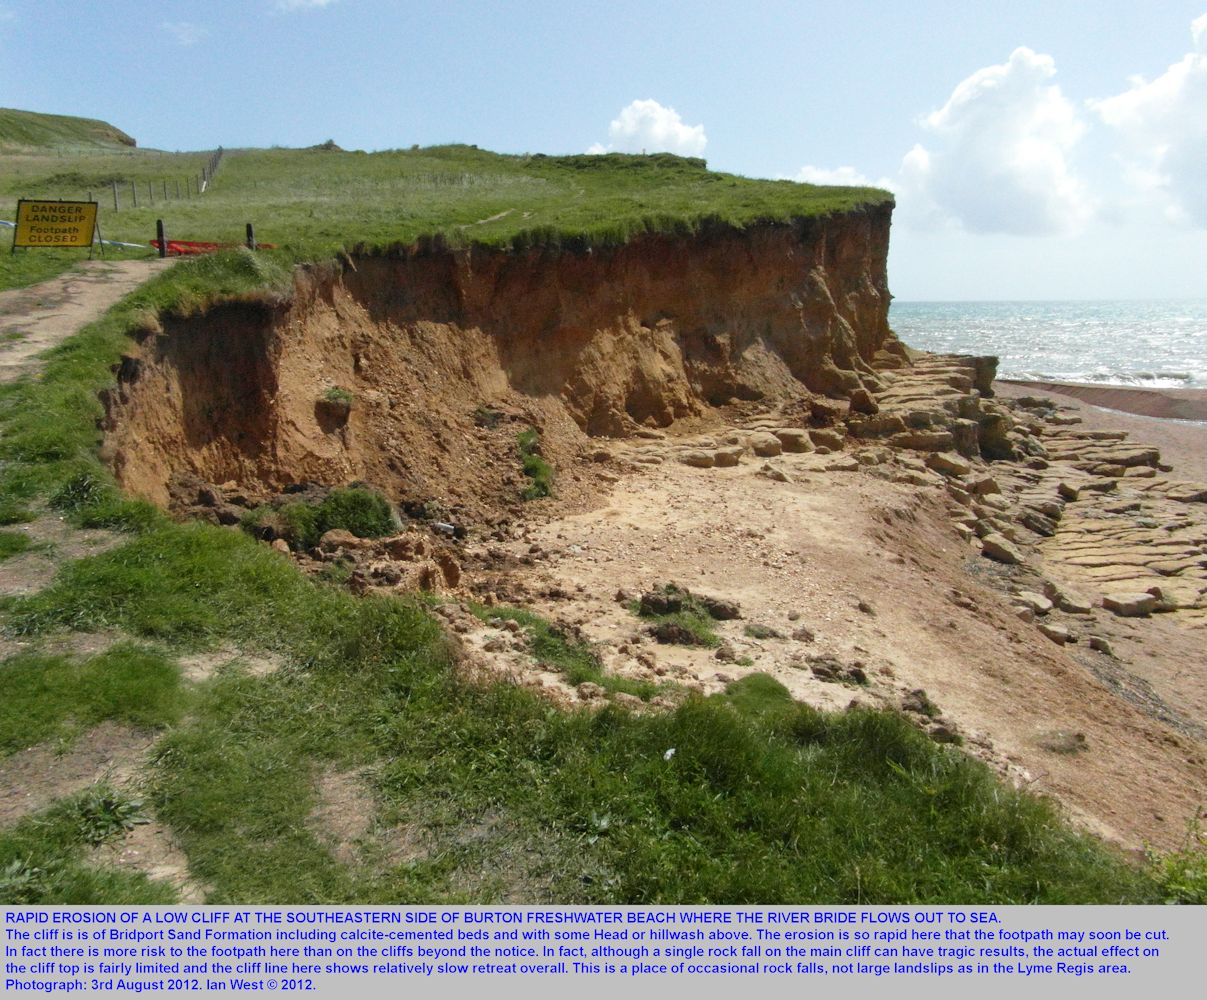 Rapid erosion of a low cliff near the outflow of the River Bride, Burton Bradstock, Dorset, 3rd August 2012